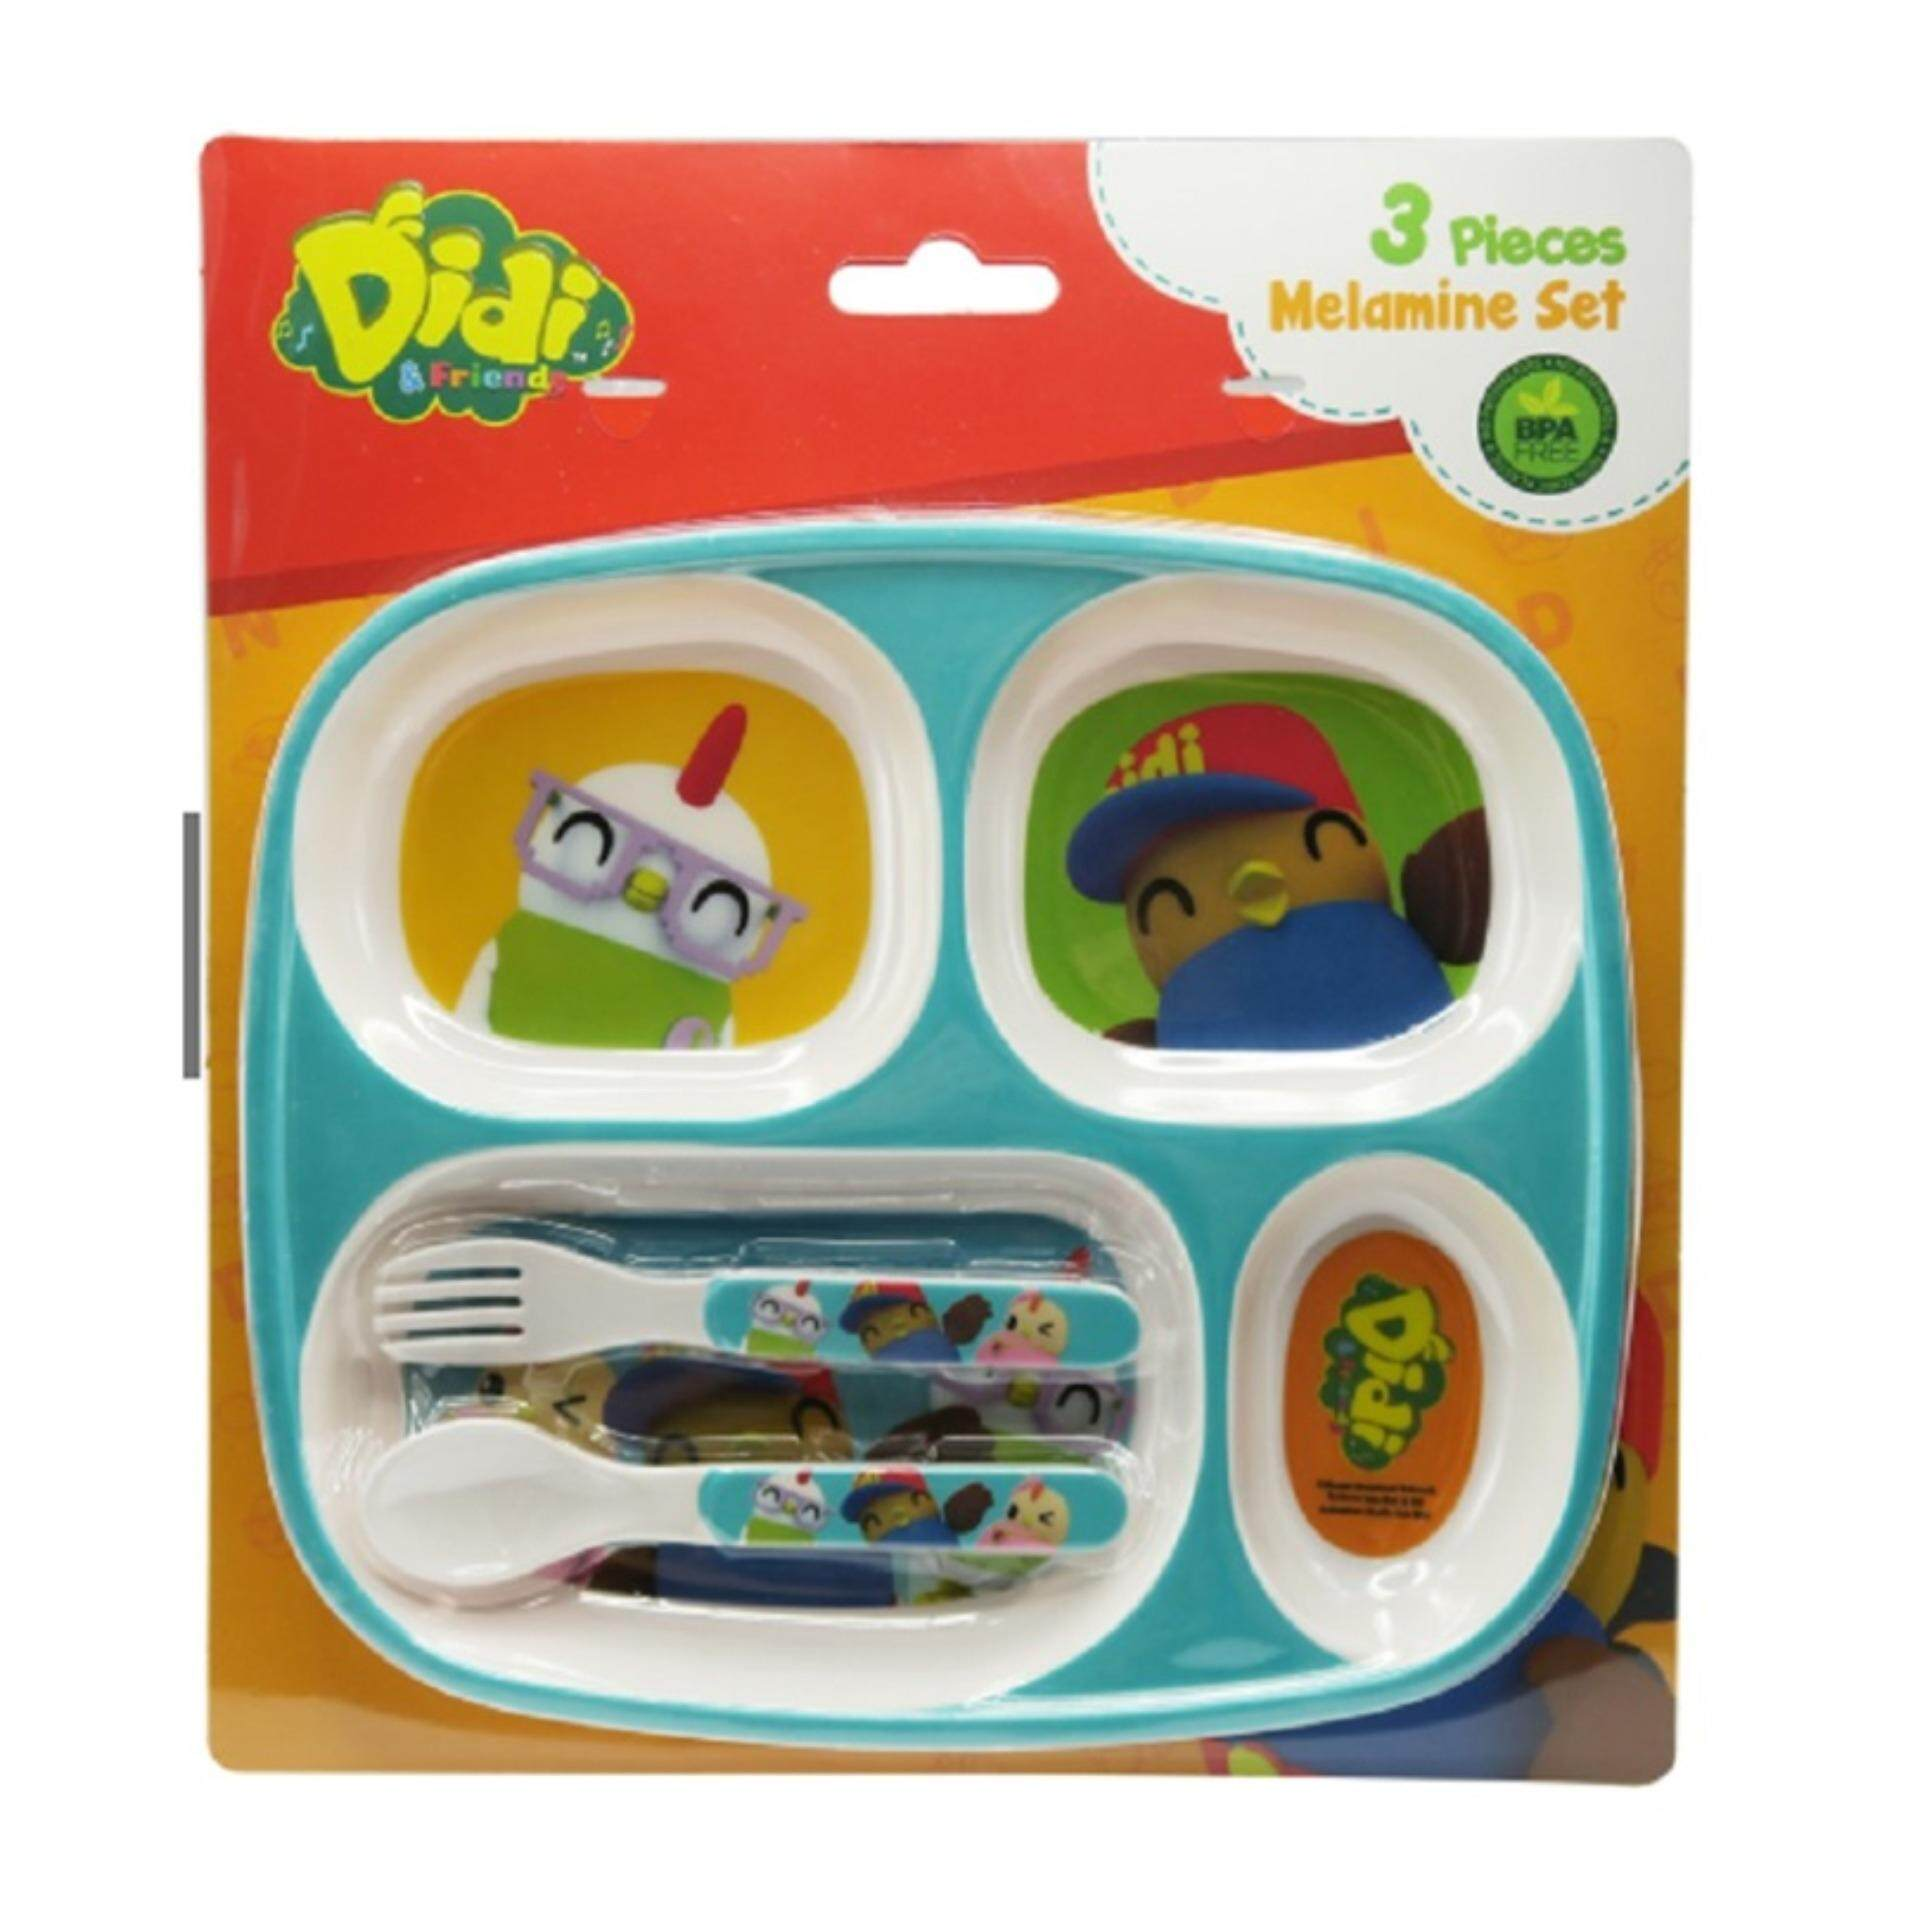 Didi & Friends Divided Plate With Fork & Spoon - Green Colour